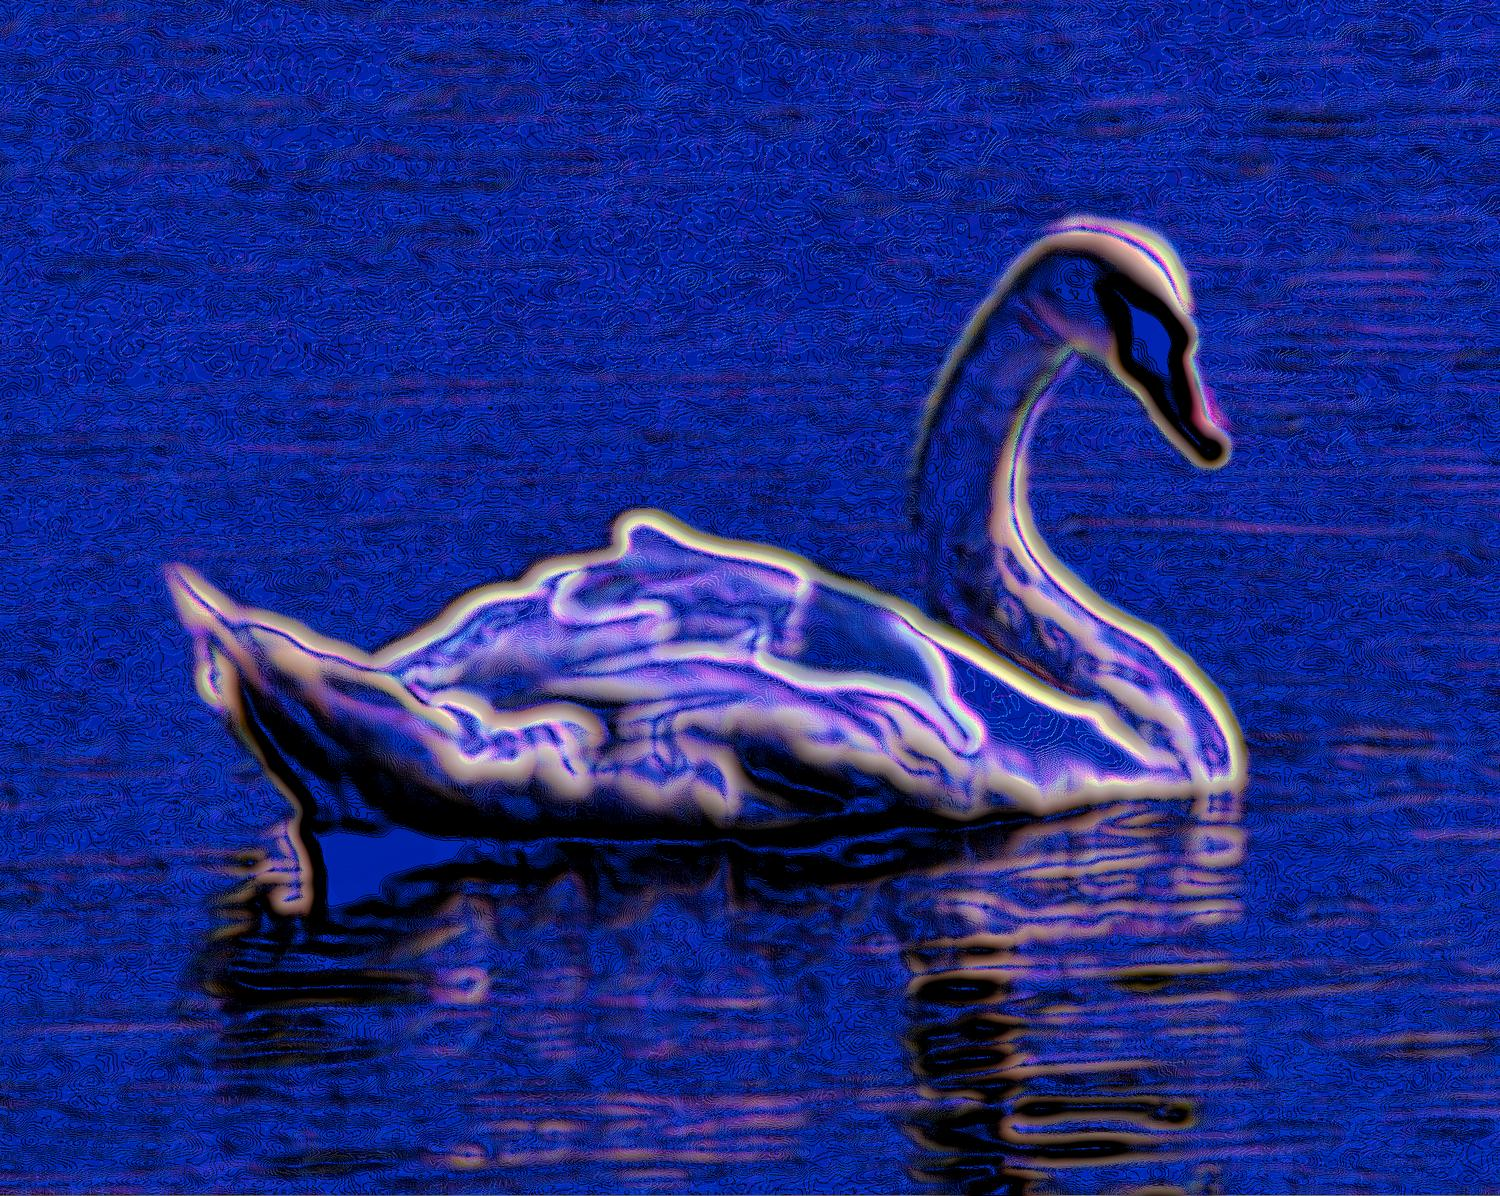 - Electric swan - Techno-Impressionist Museum - Techno-Impressionism - art - beautiful - photo photography picture - by Tony Karp